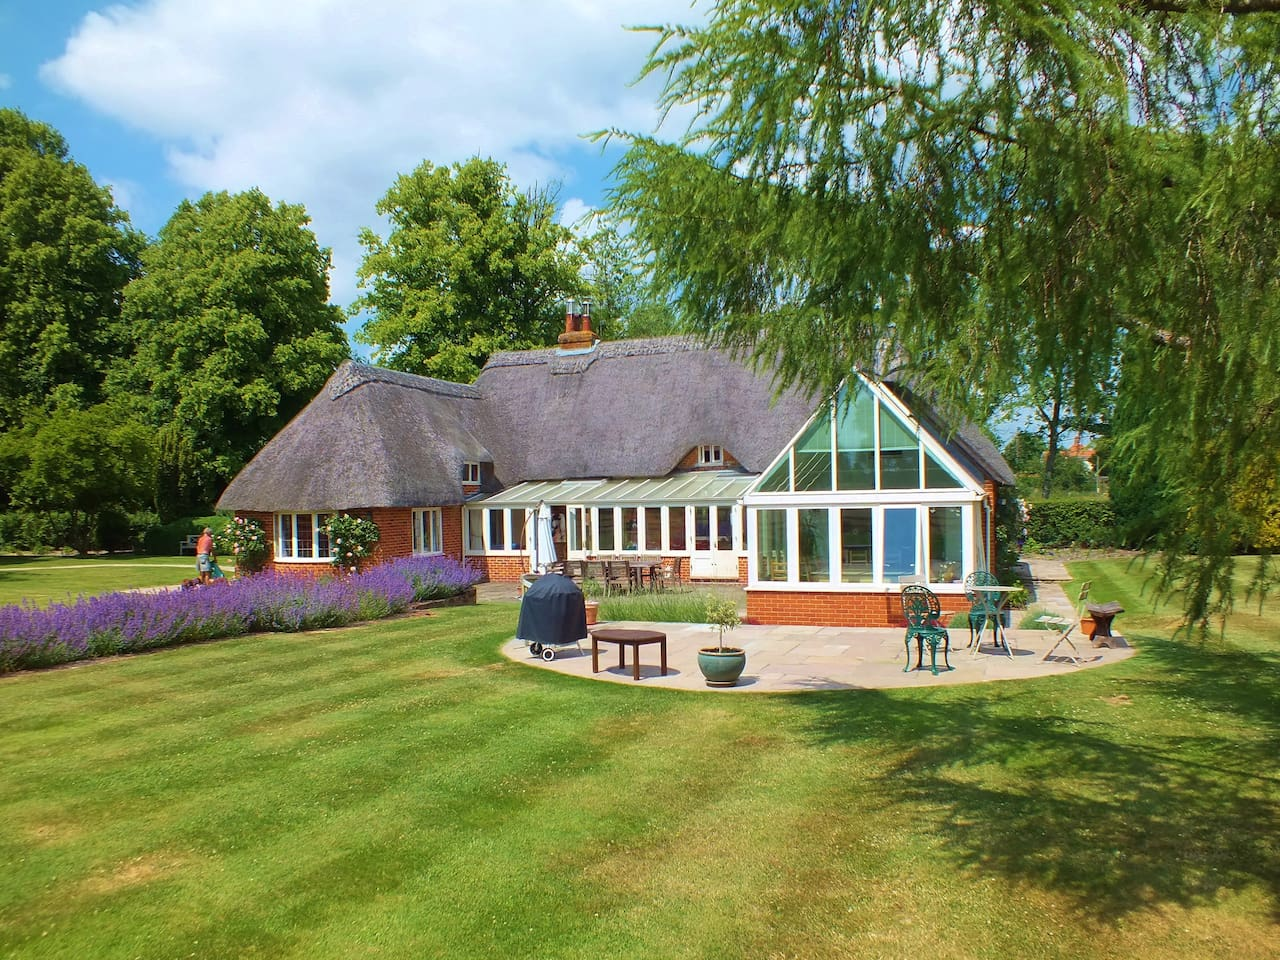 thatched roof, modern spacious, private